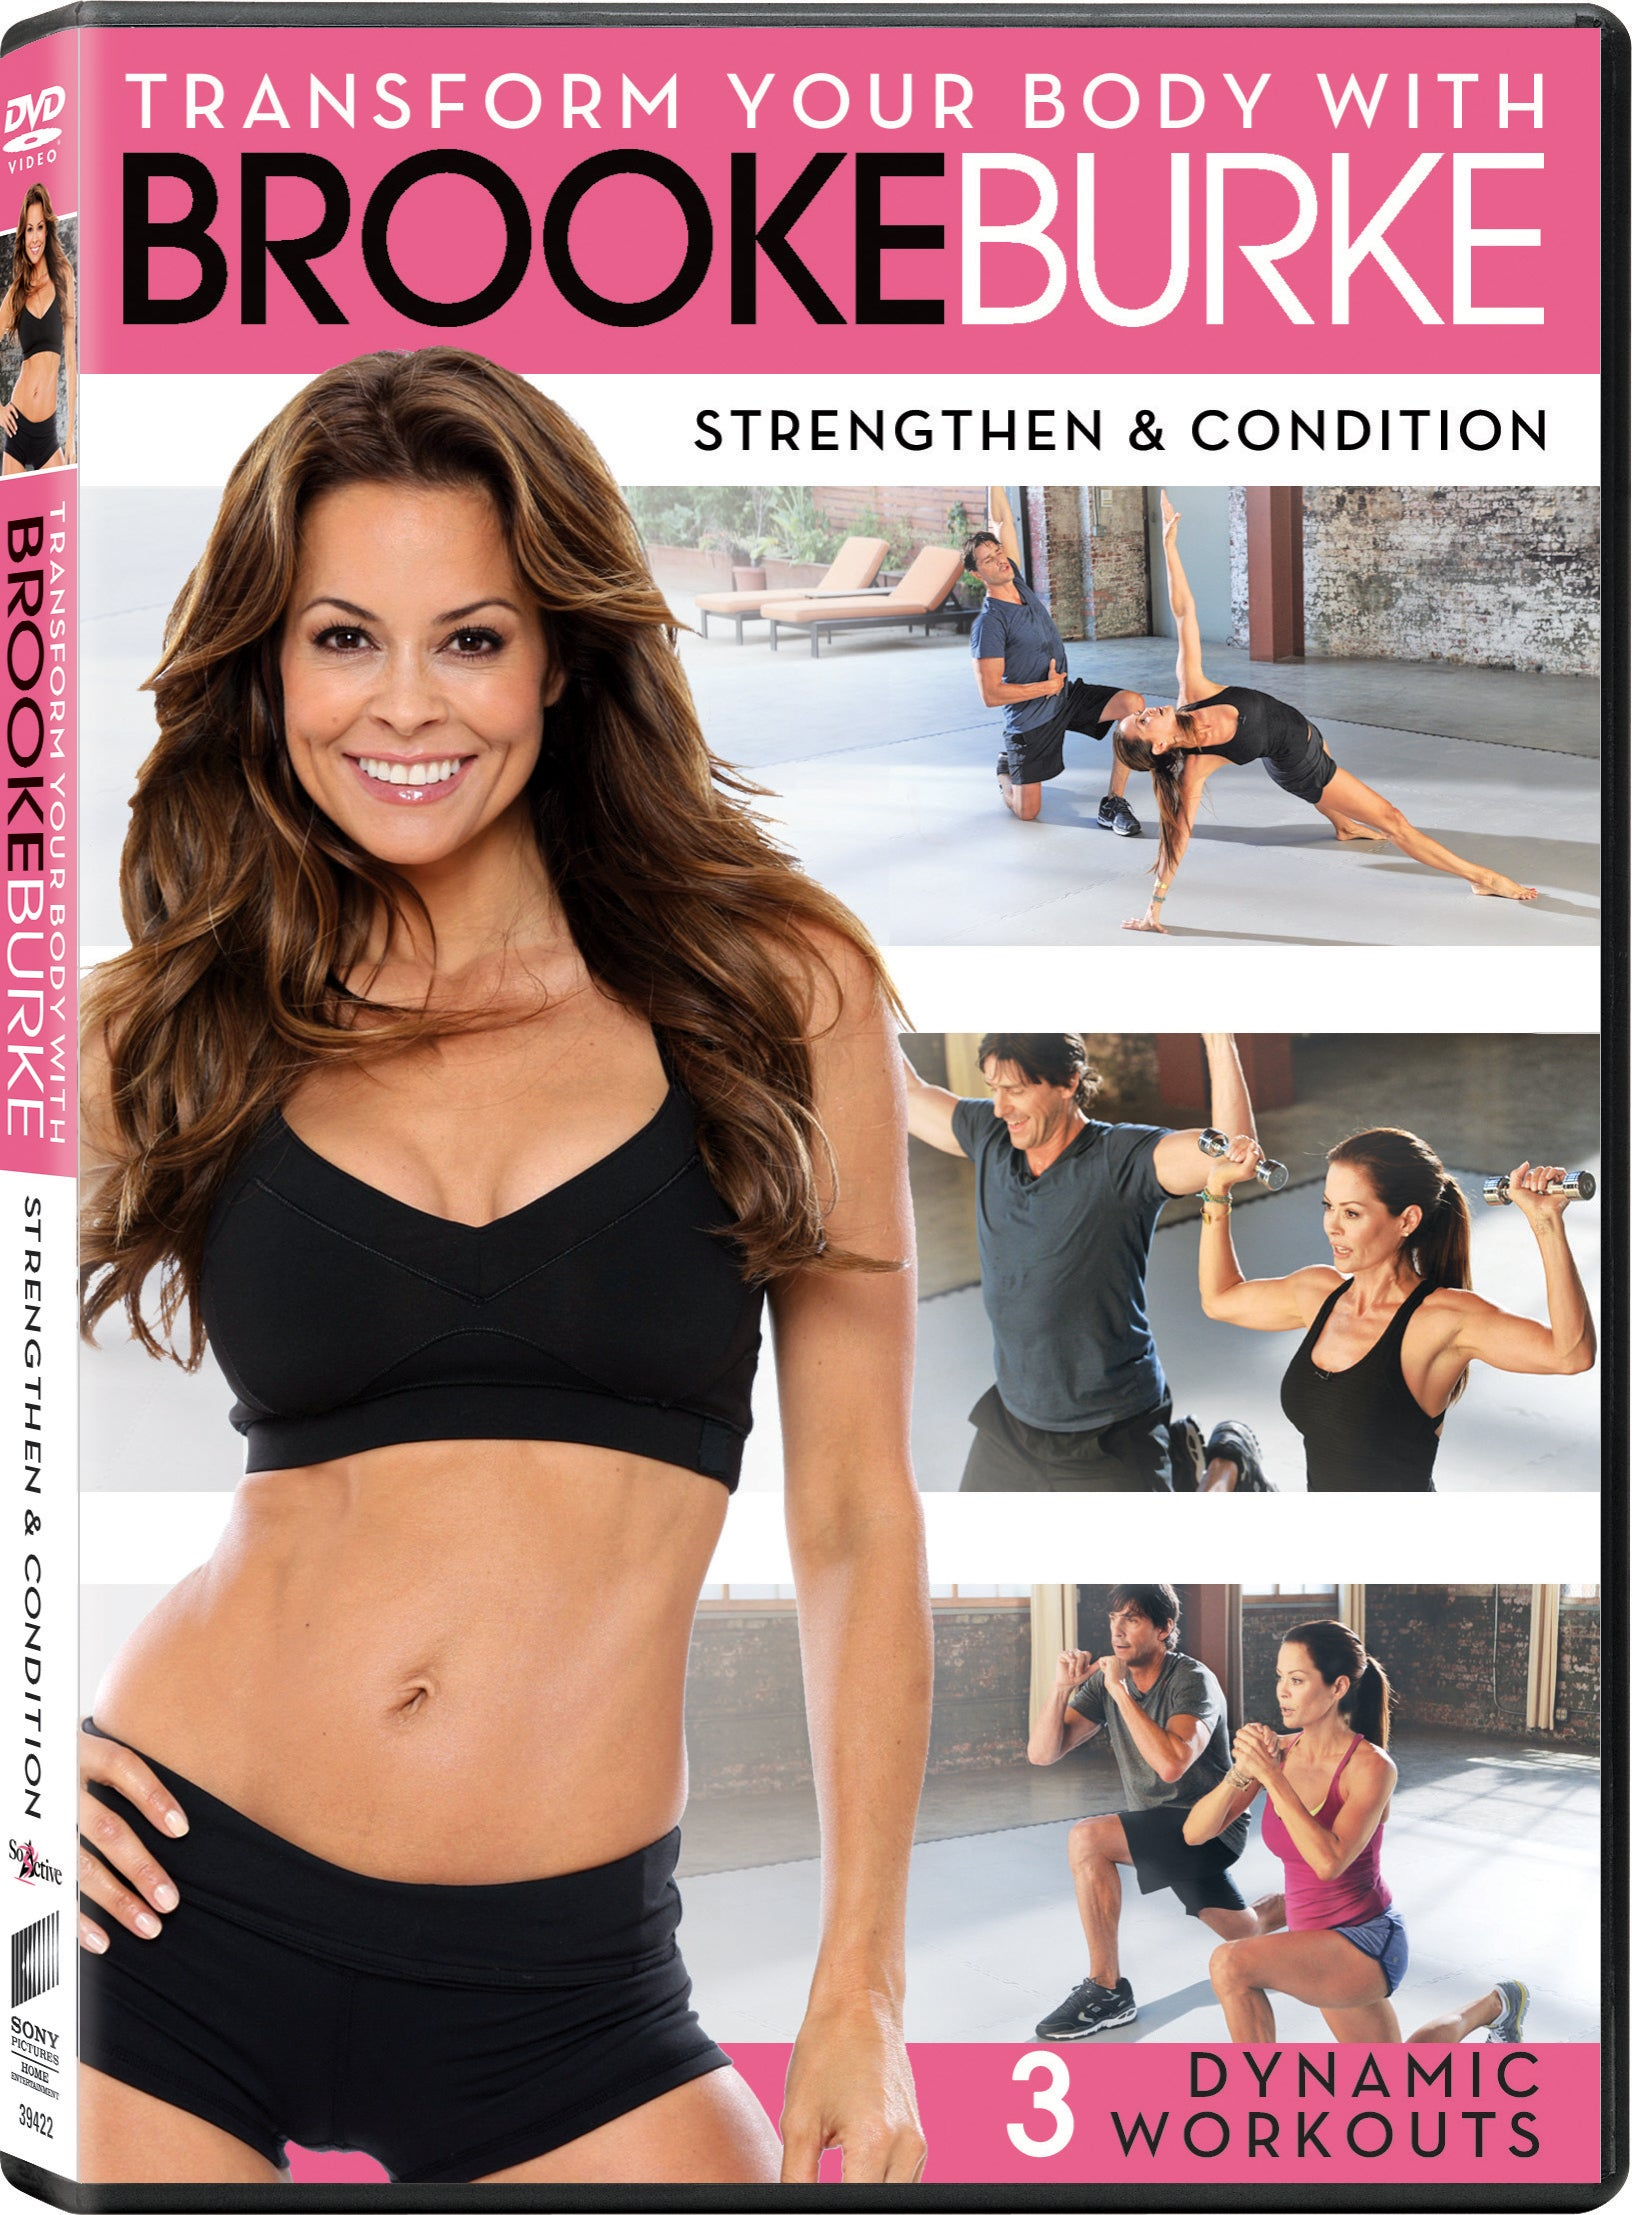 Brooke Burke: Strengthen & Condition (DVD)